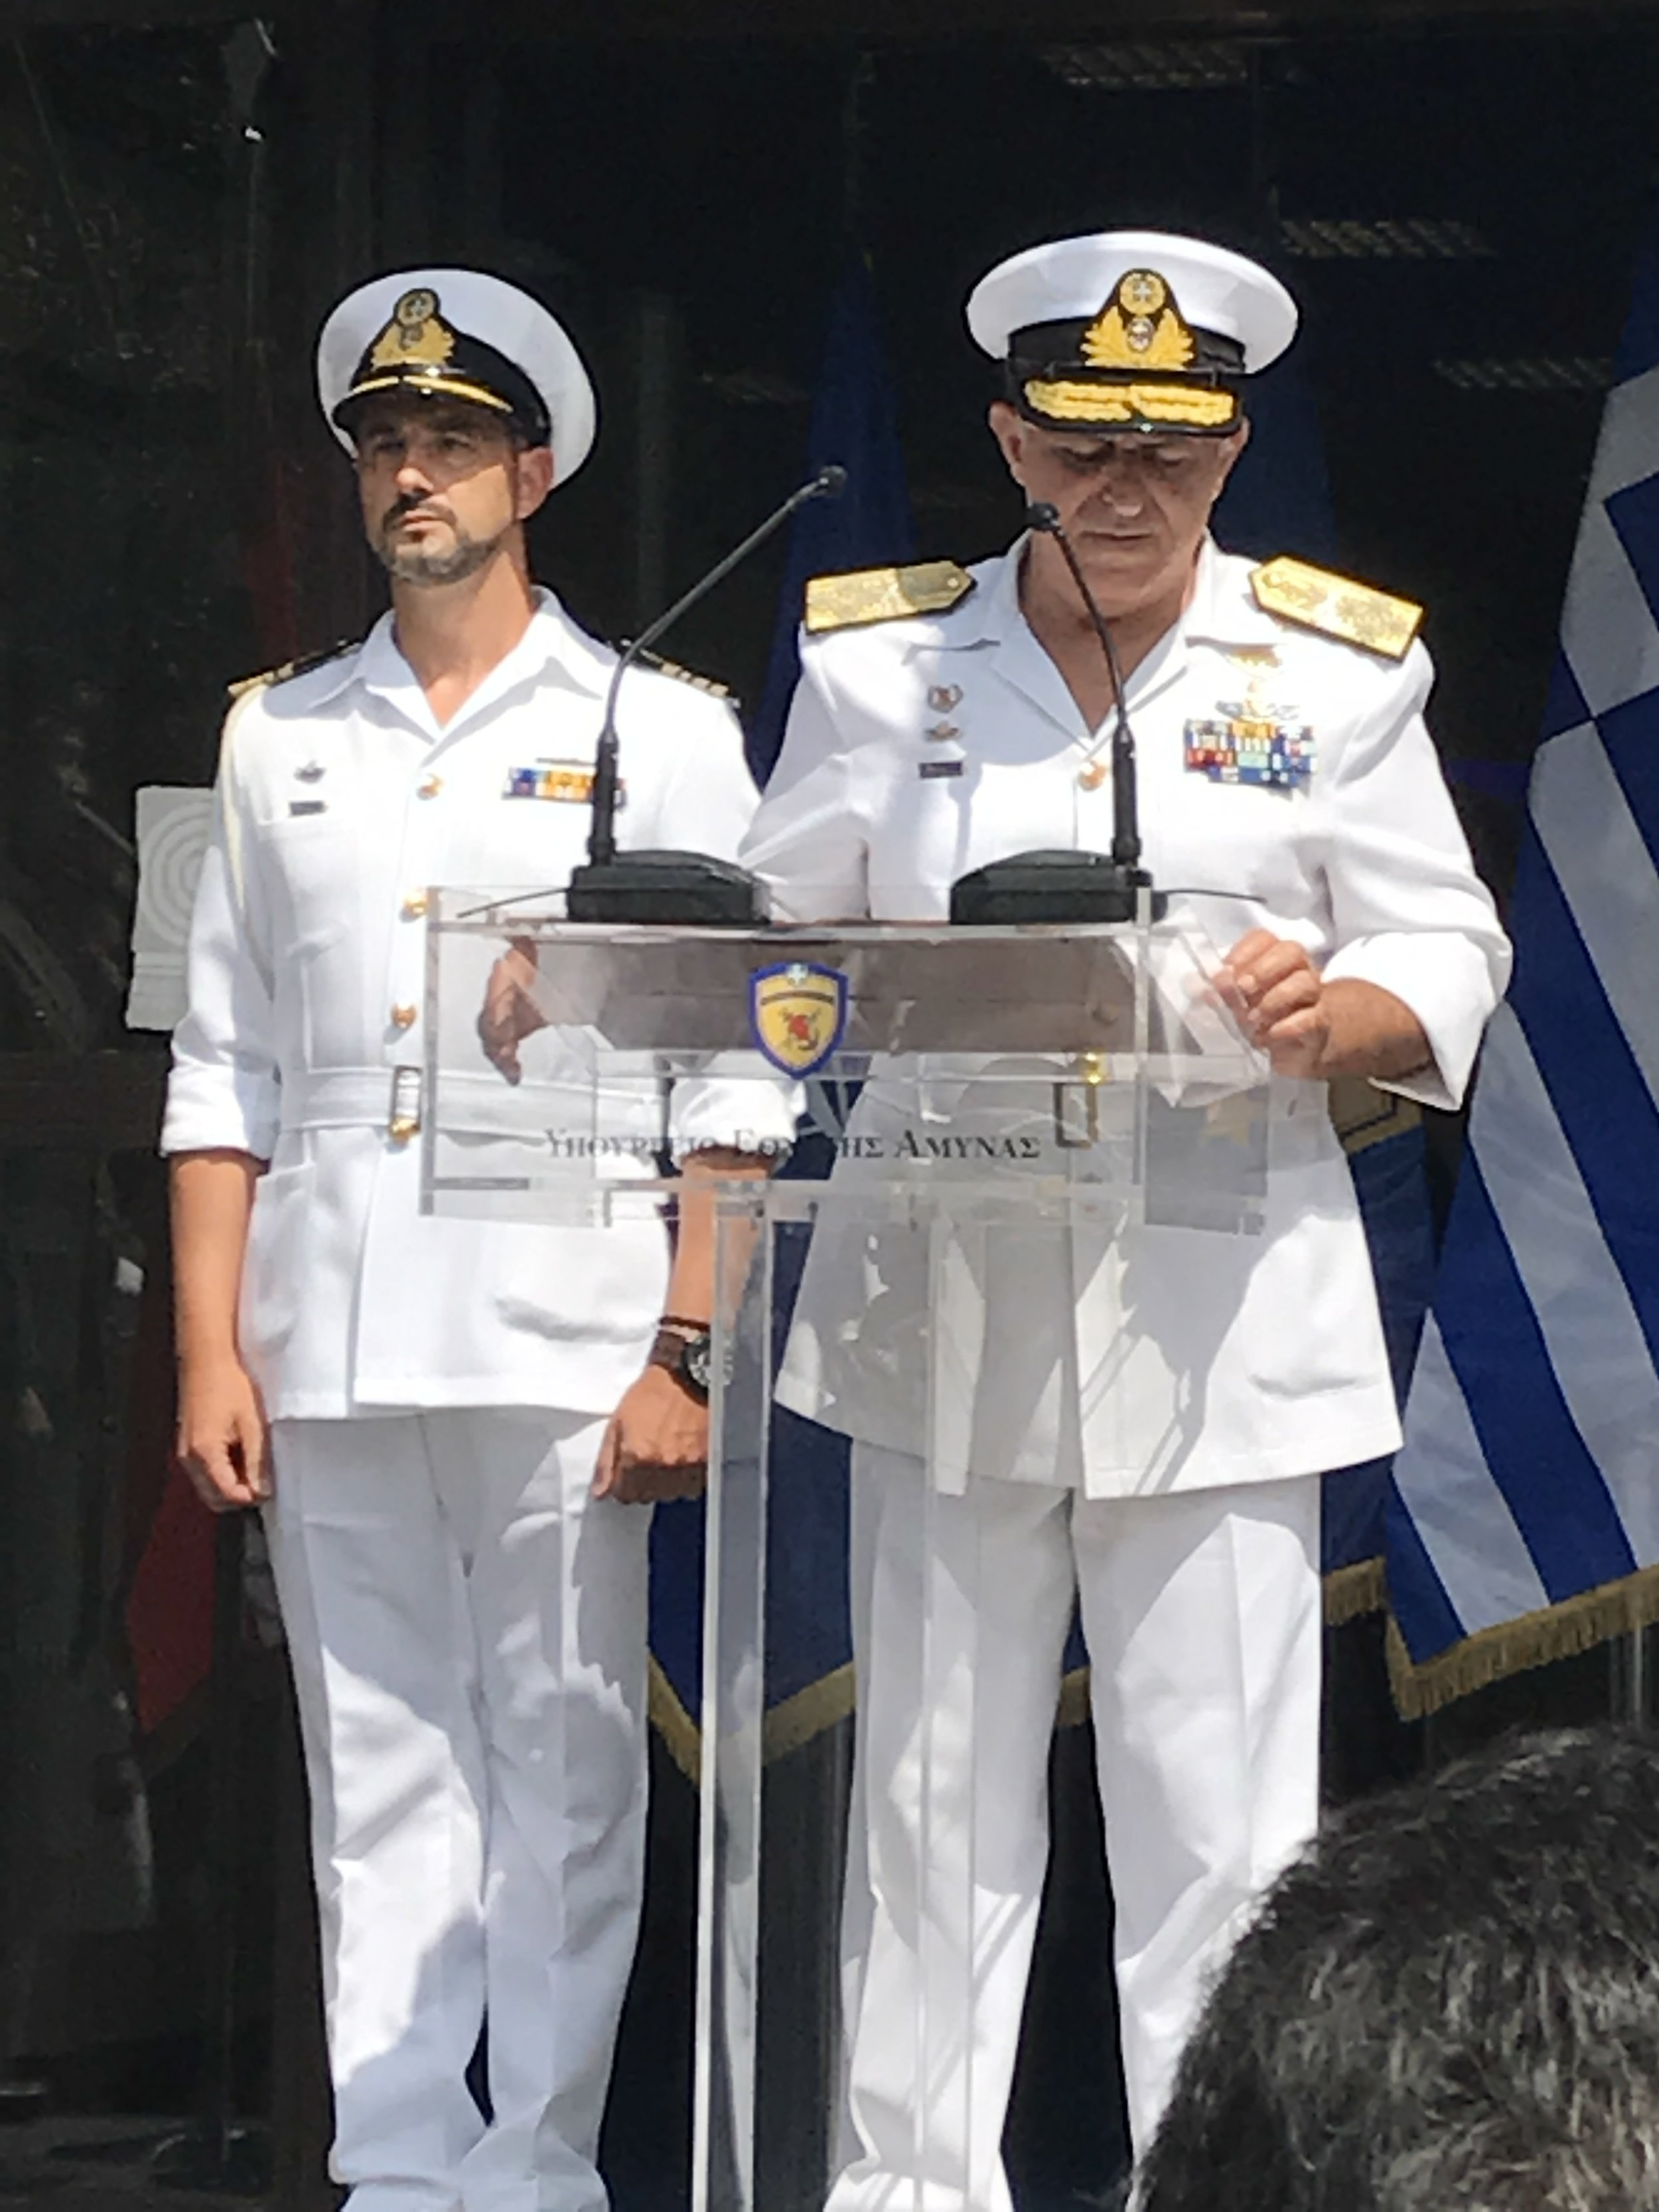 Admiral Evangelos Apostolakis, Chief of the Hellenic Armed Forces, provides opening remarks at the inauguration of the Hellenic Armed Forces pavilion.